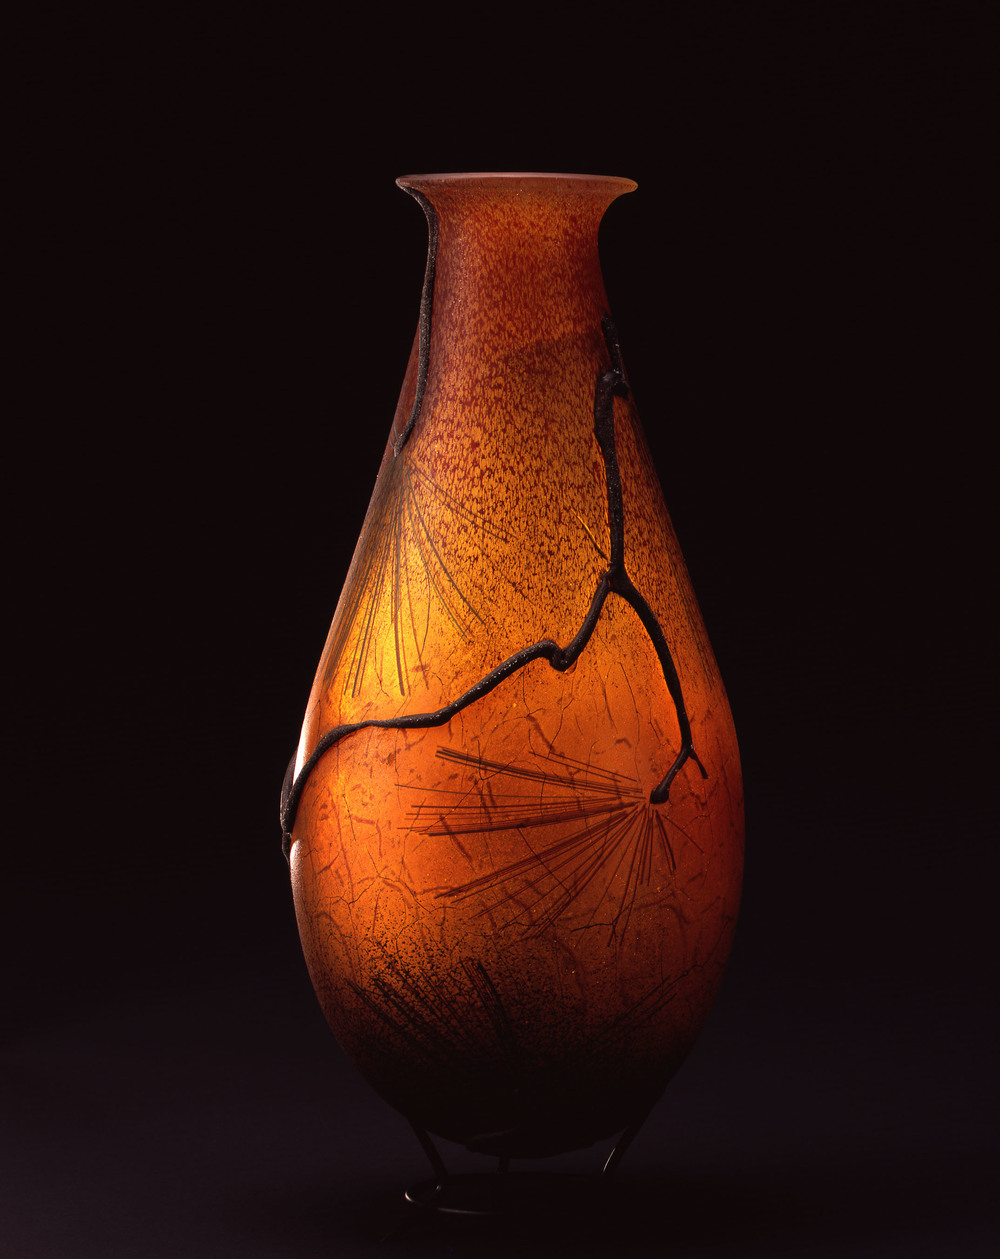 William Morris,  Vase with Ponderosa Pine Branches    (2004, glass, 18 5/8 x 8 1/4 x 8 1/8 inches), WM.42